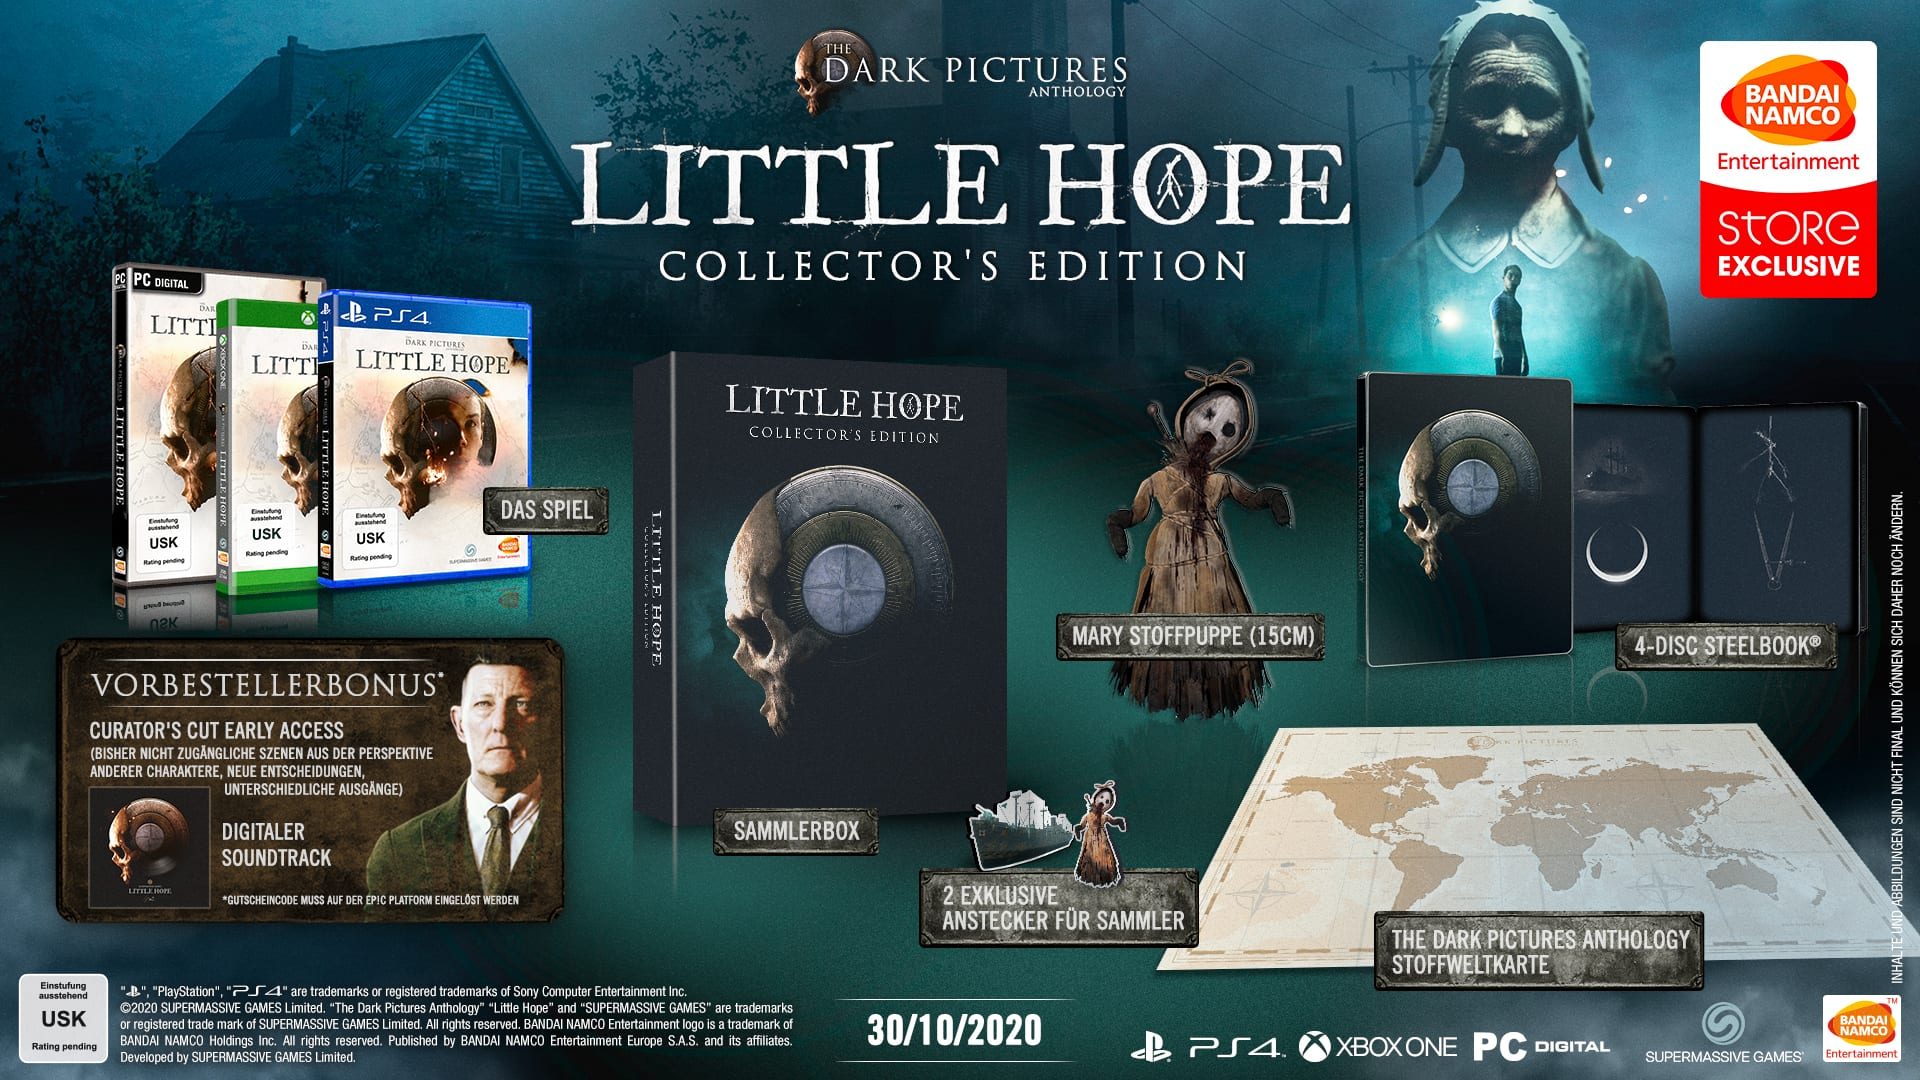 Little Hope Collector's Edition